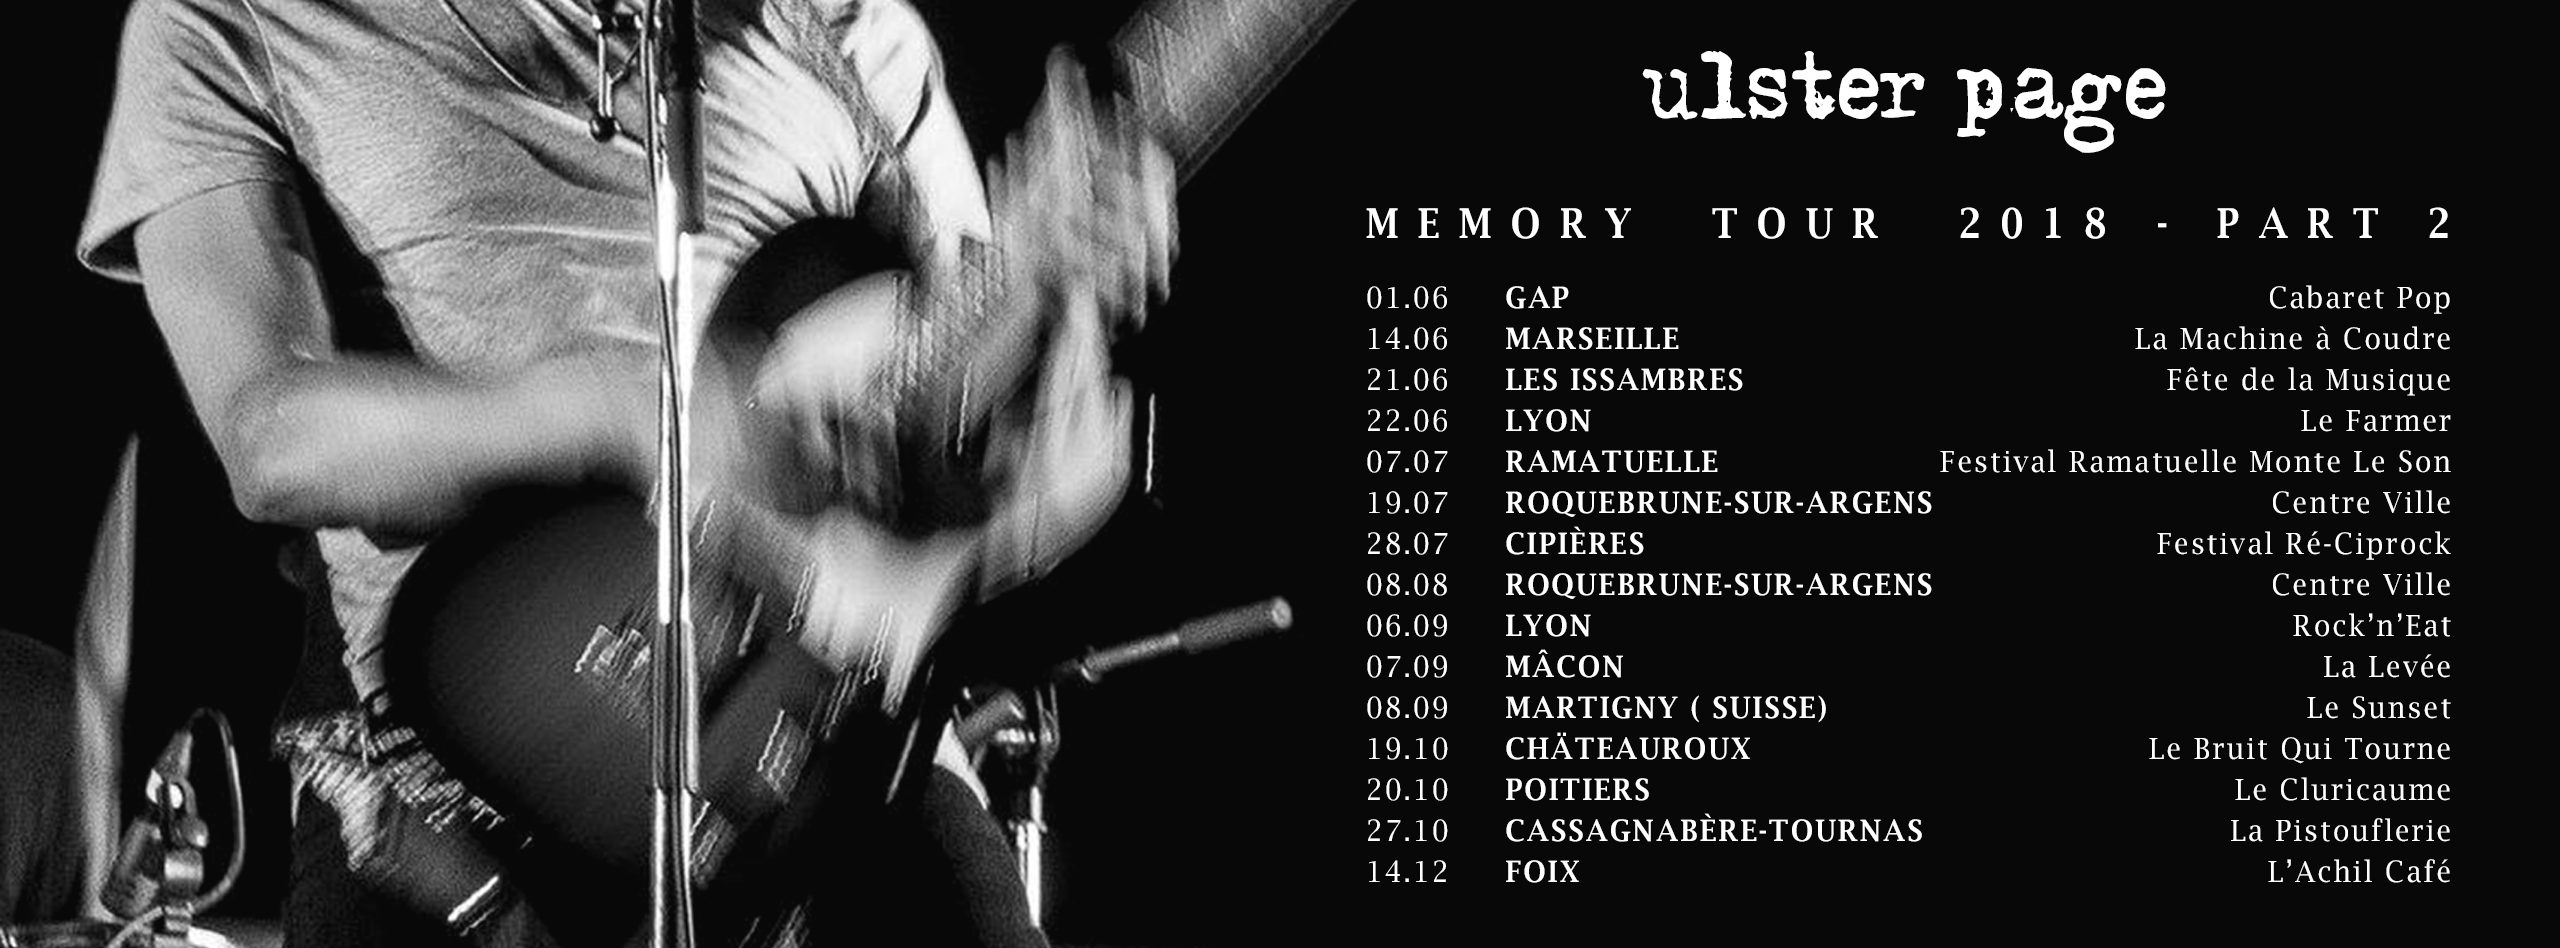 ULSTER PAGE MEMORY TOUR 2018 PART 2